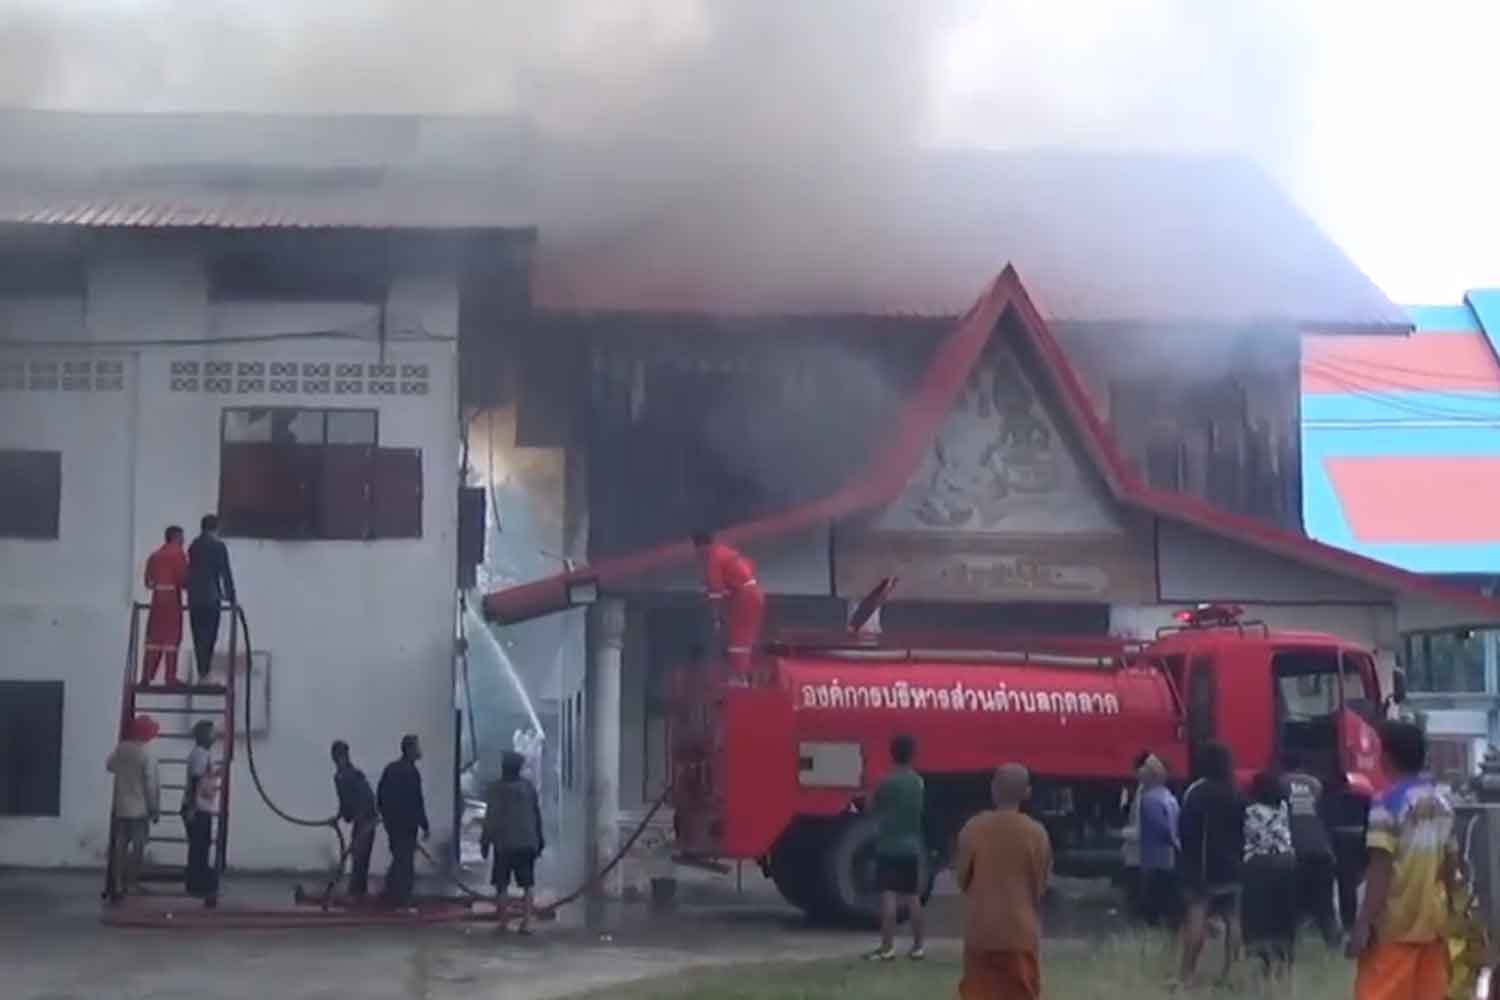 Fire destroys temple buildings in Ubon